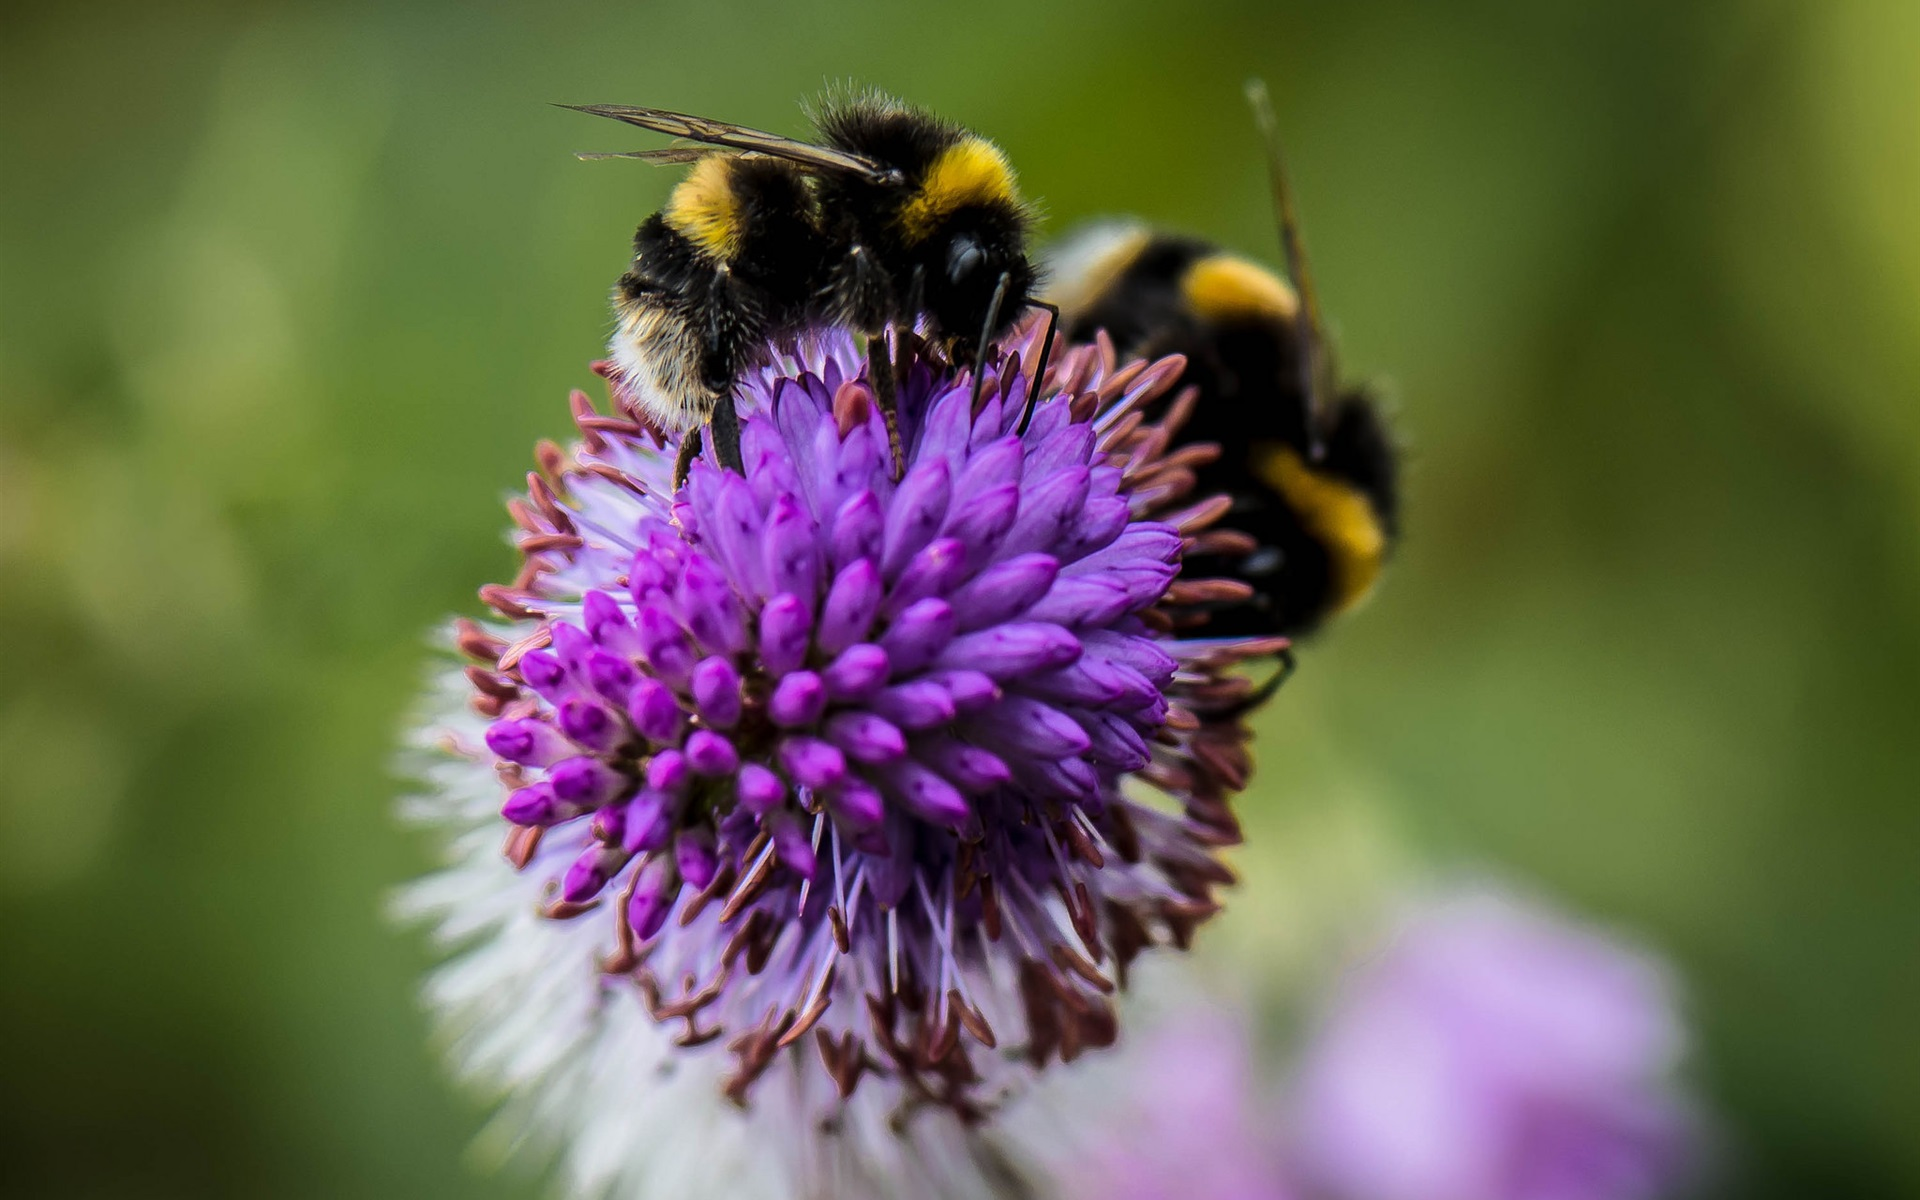 Wallpapers Insect, bumblebee, flower 1920x1200 HD Picture, Image